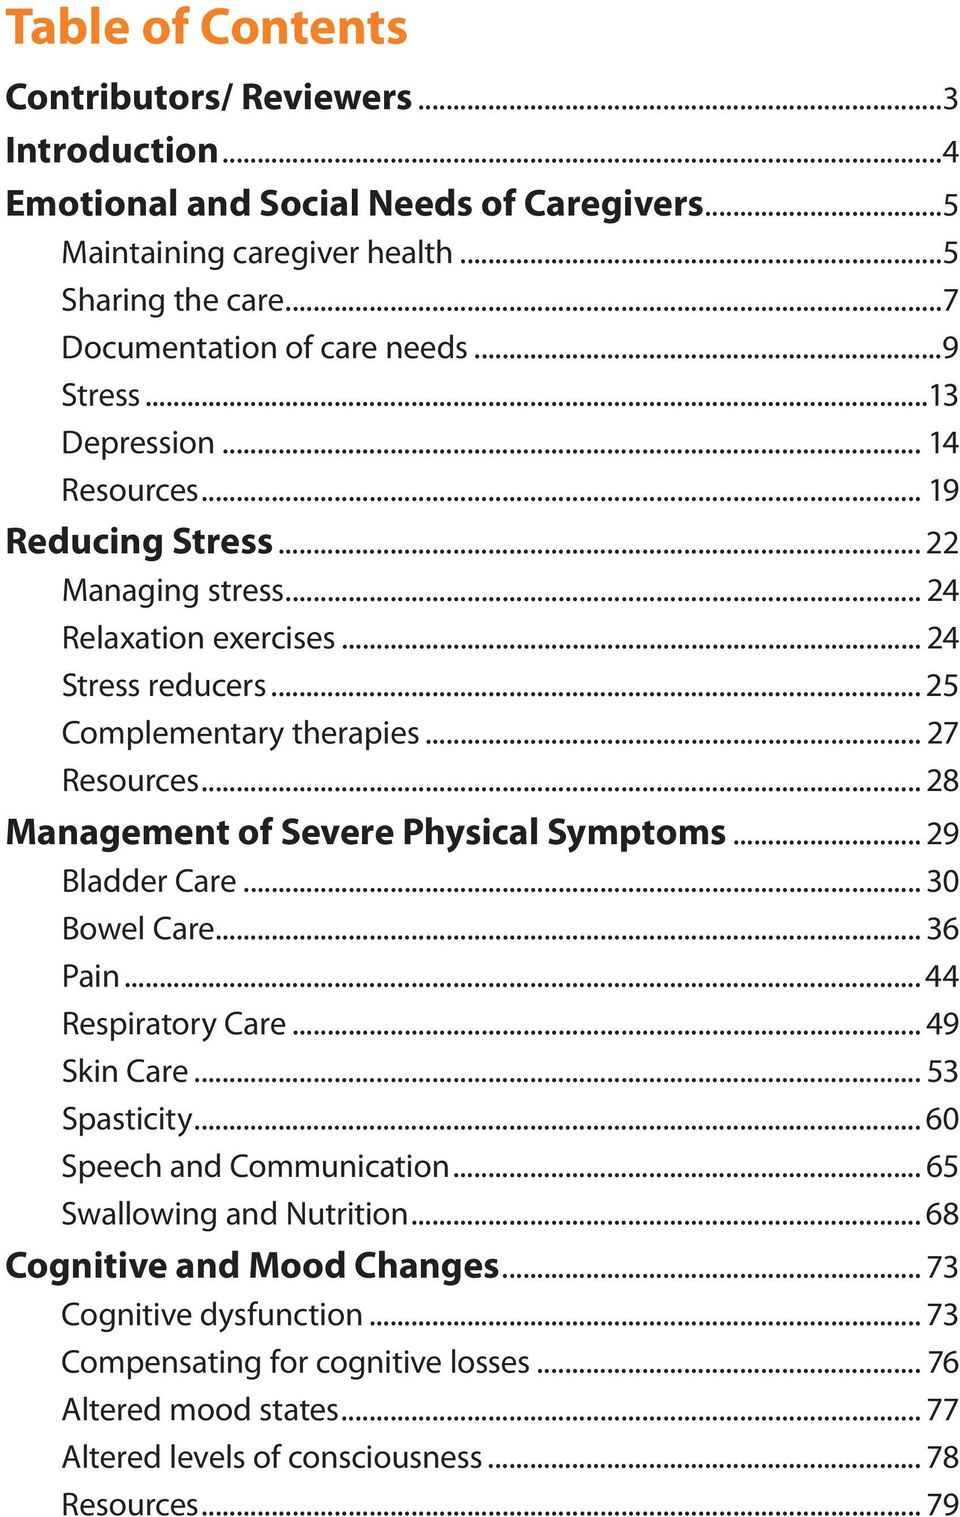 .. 28 Management of Severe Physical Symptoms... 29 Bladder Care... 30 Bowel Care... 36 Pain... 44 Respiratory Care... 49 Skin Care... 53 Spasticity... 60 Speech and Communication.